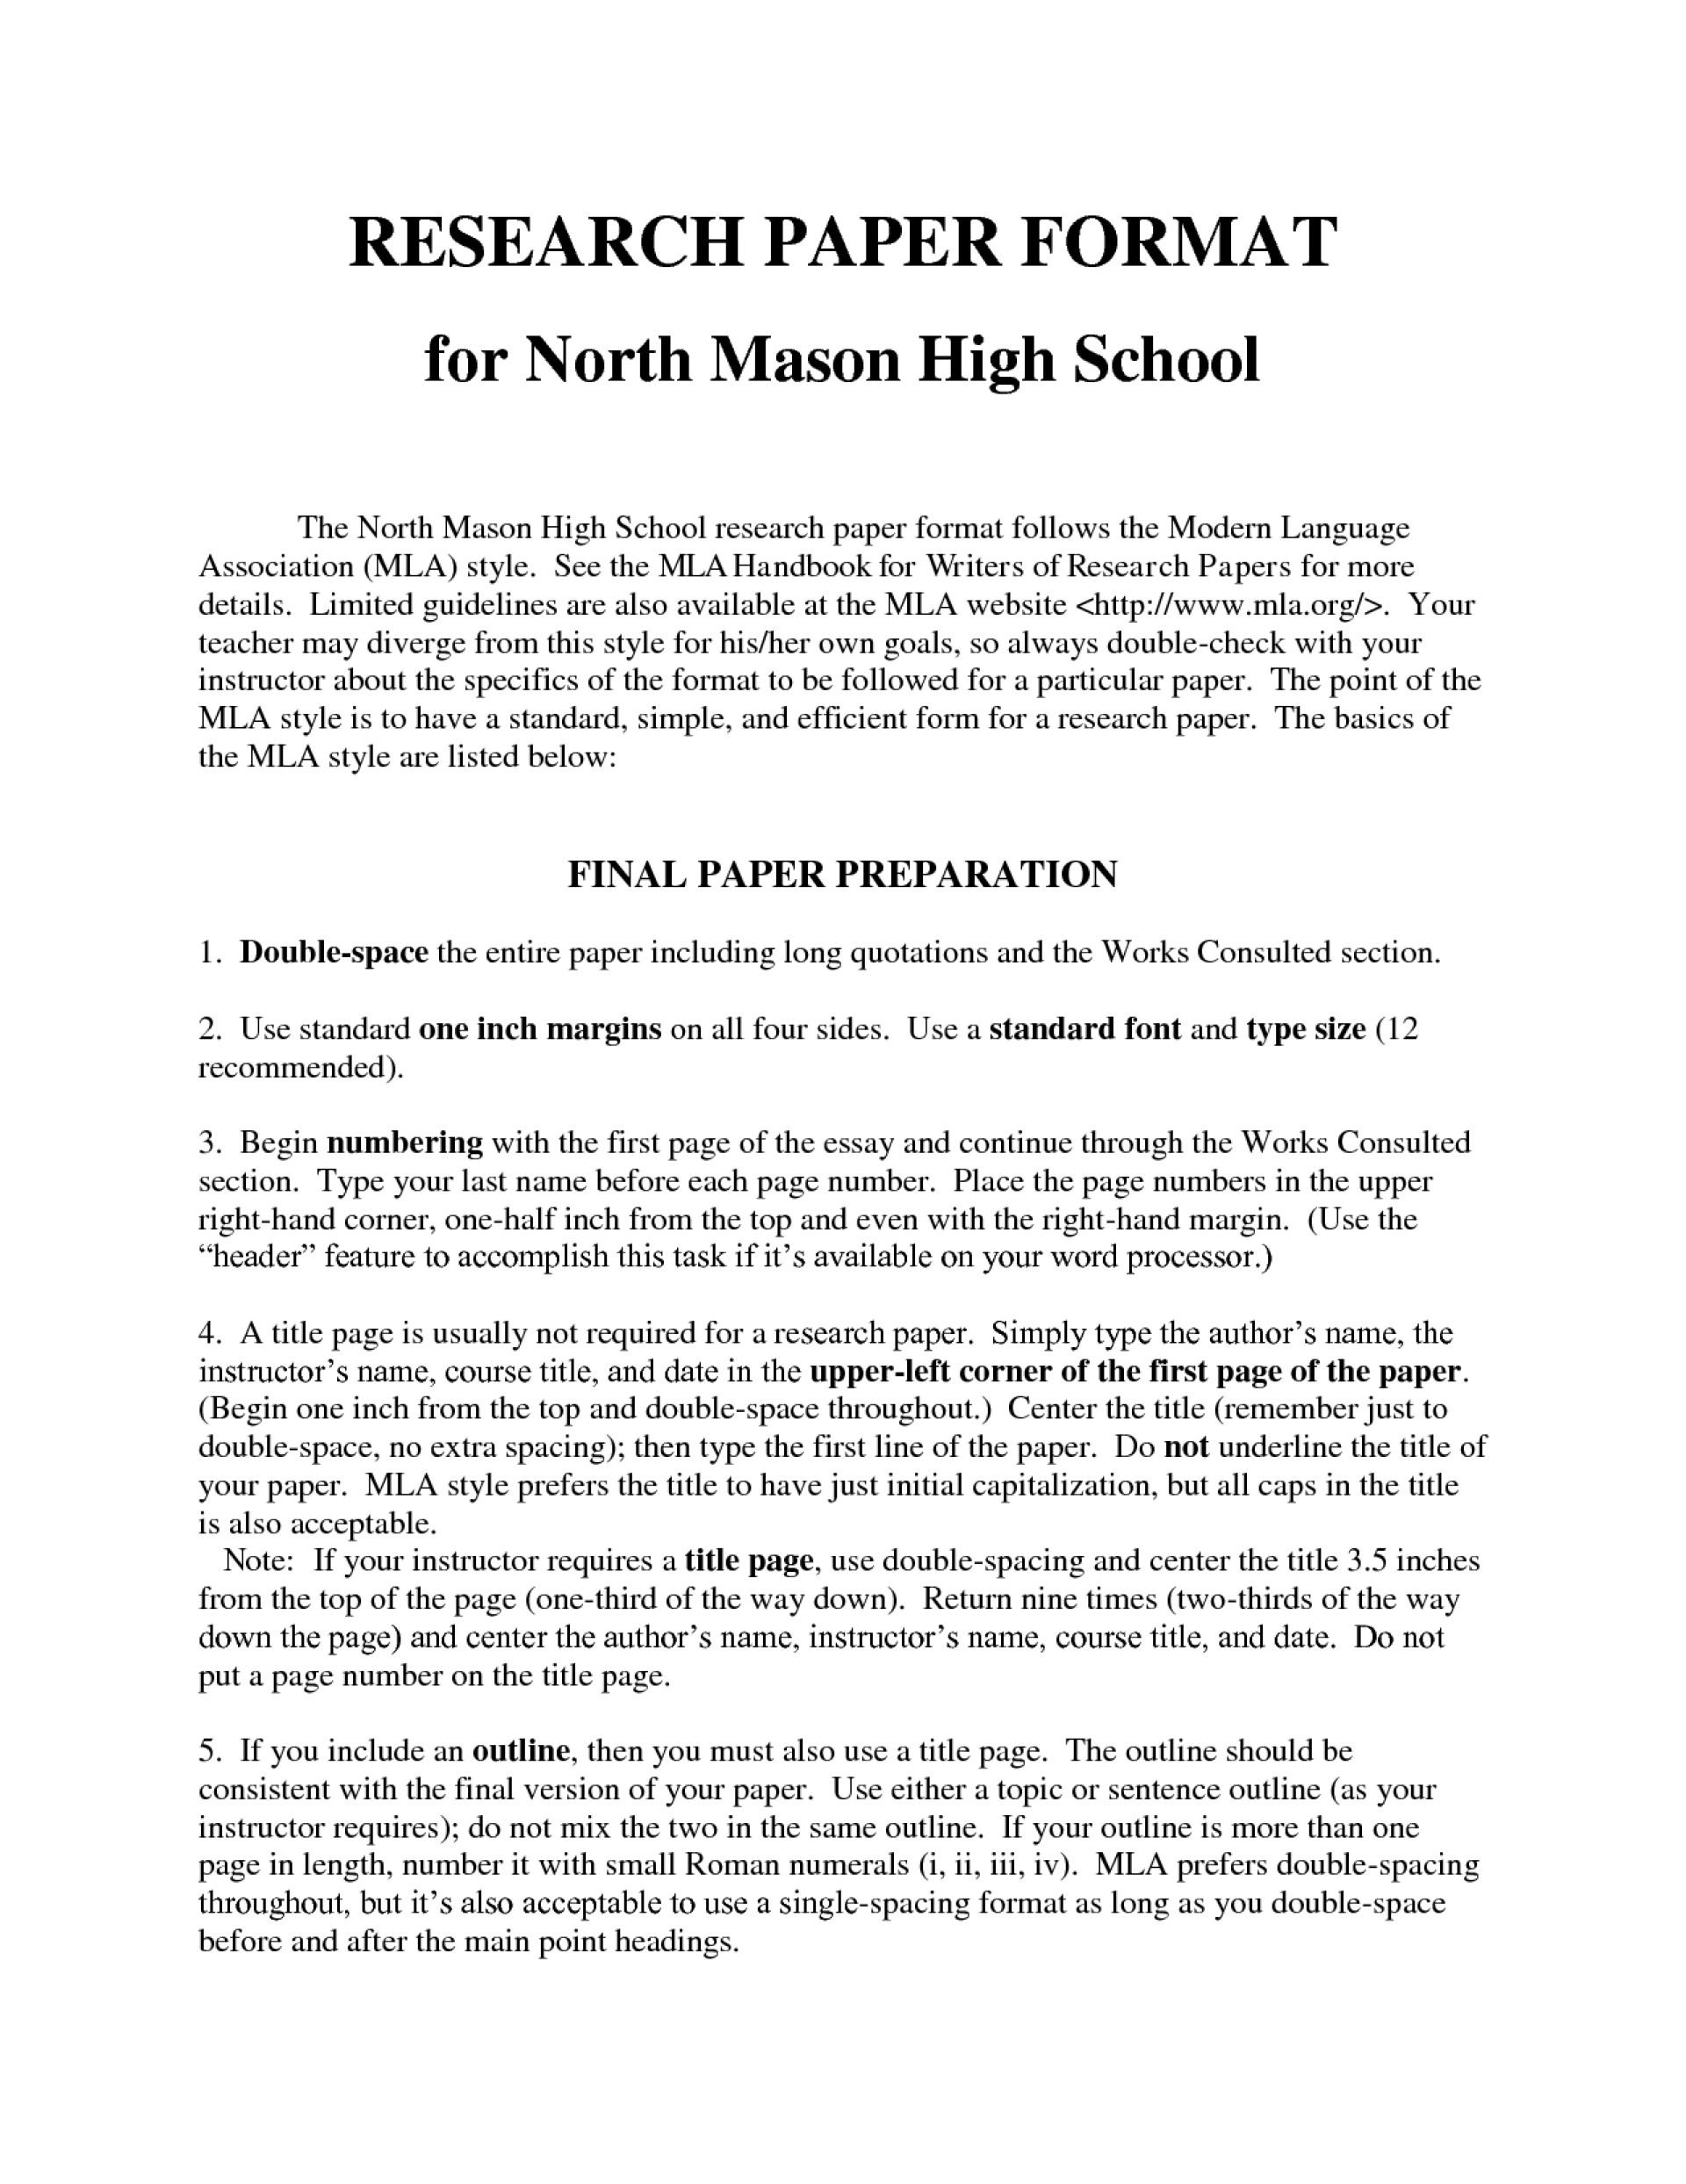 002 High School Research Paper Template Frightening Proposal Outline Example 1920